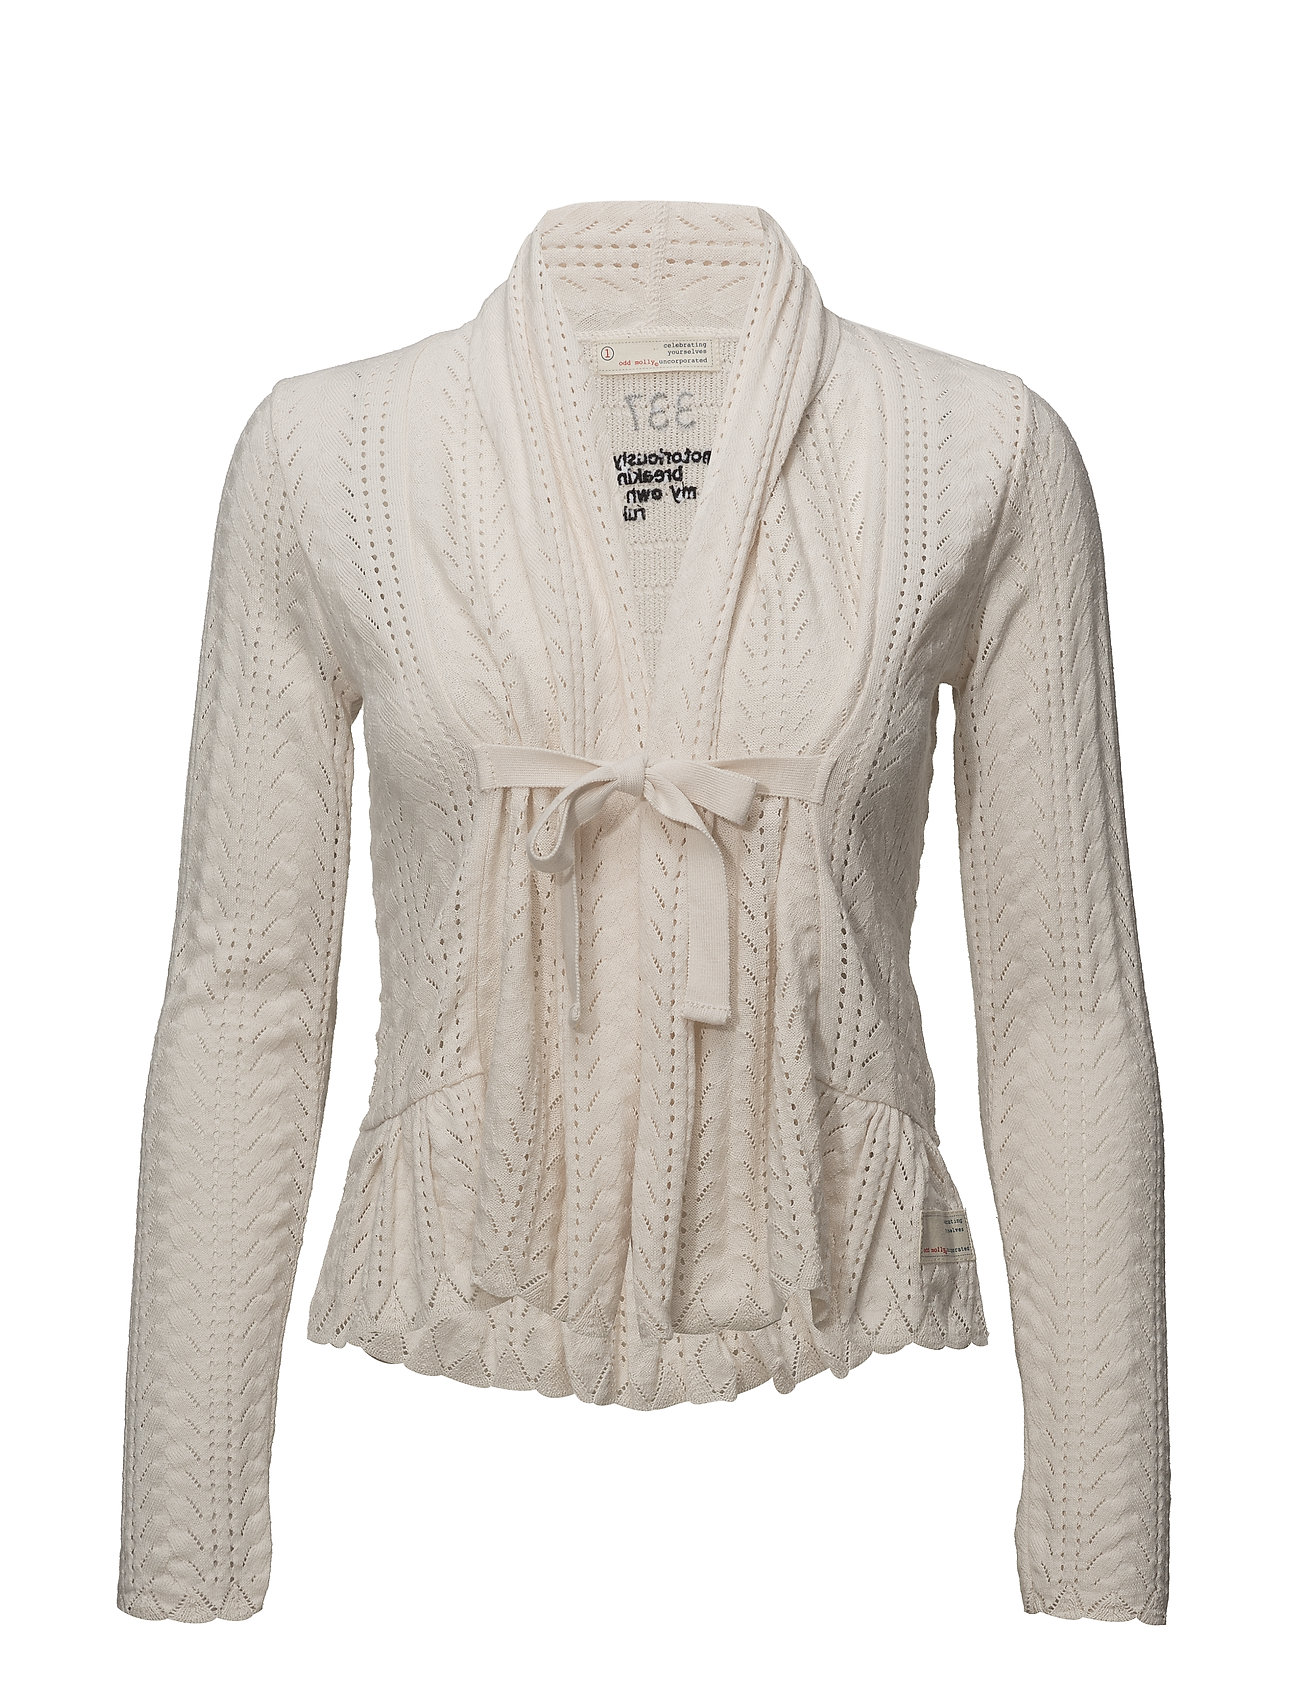 f0a0138bb126 Can-can Cardigan (Pink Porcelain) (£87.45) - ODD MOLLY -